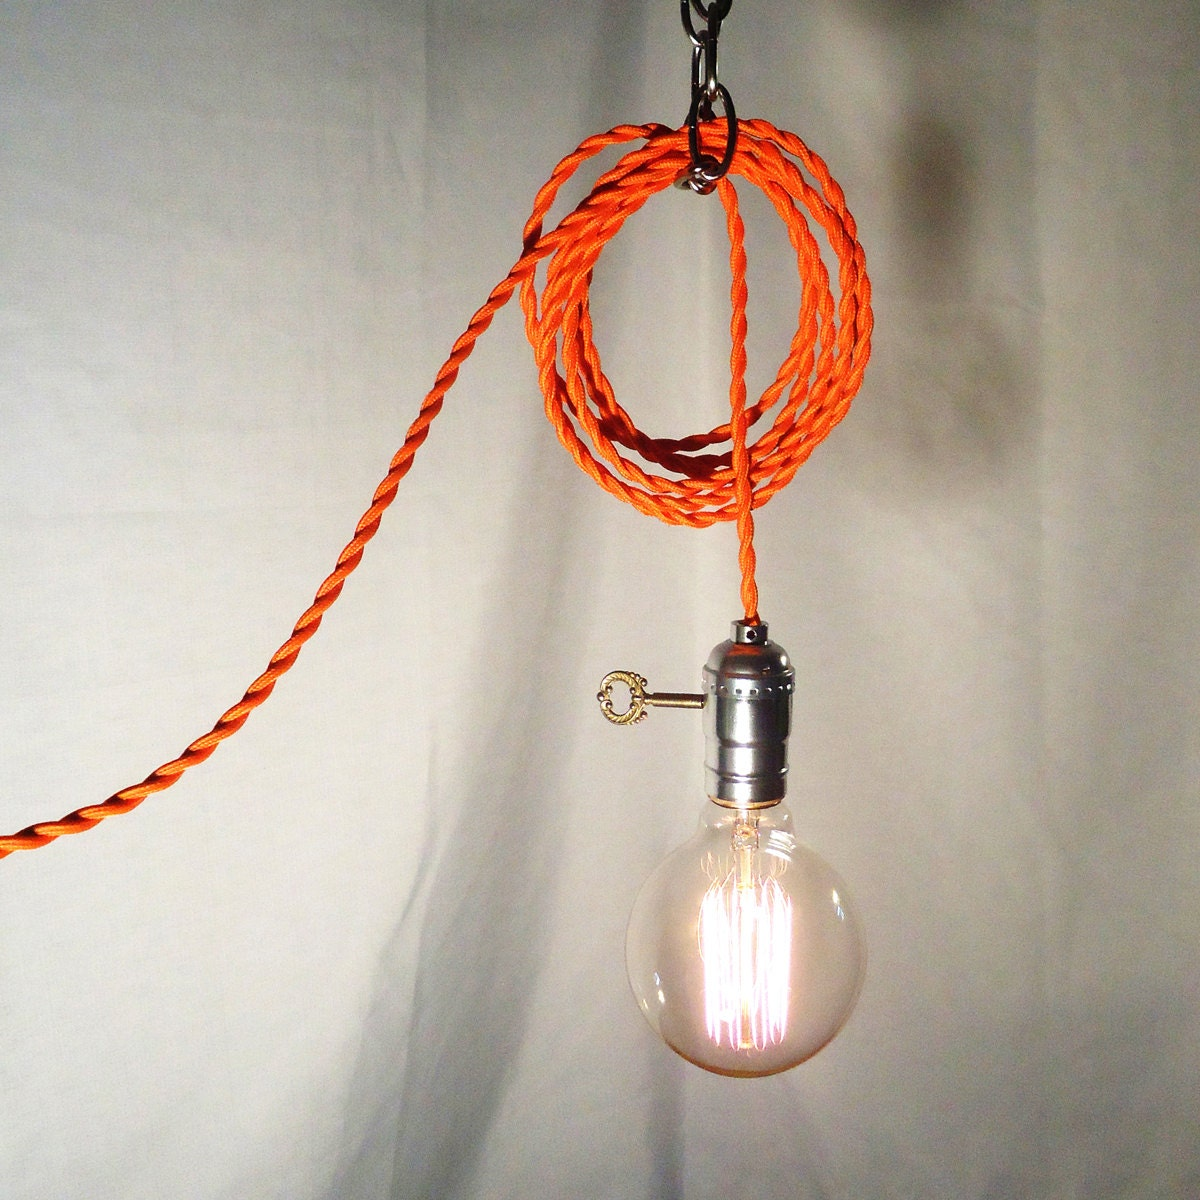 hanging lamp twisted orange cord exposed edison bulb